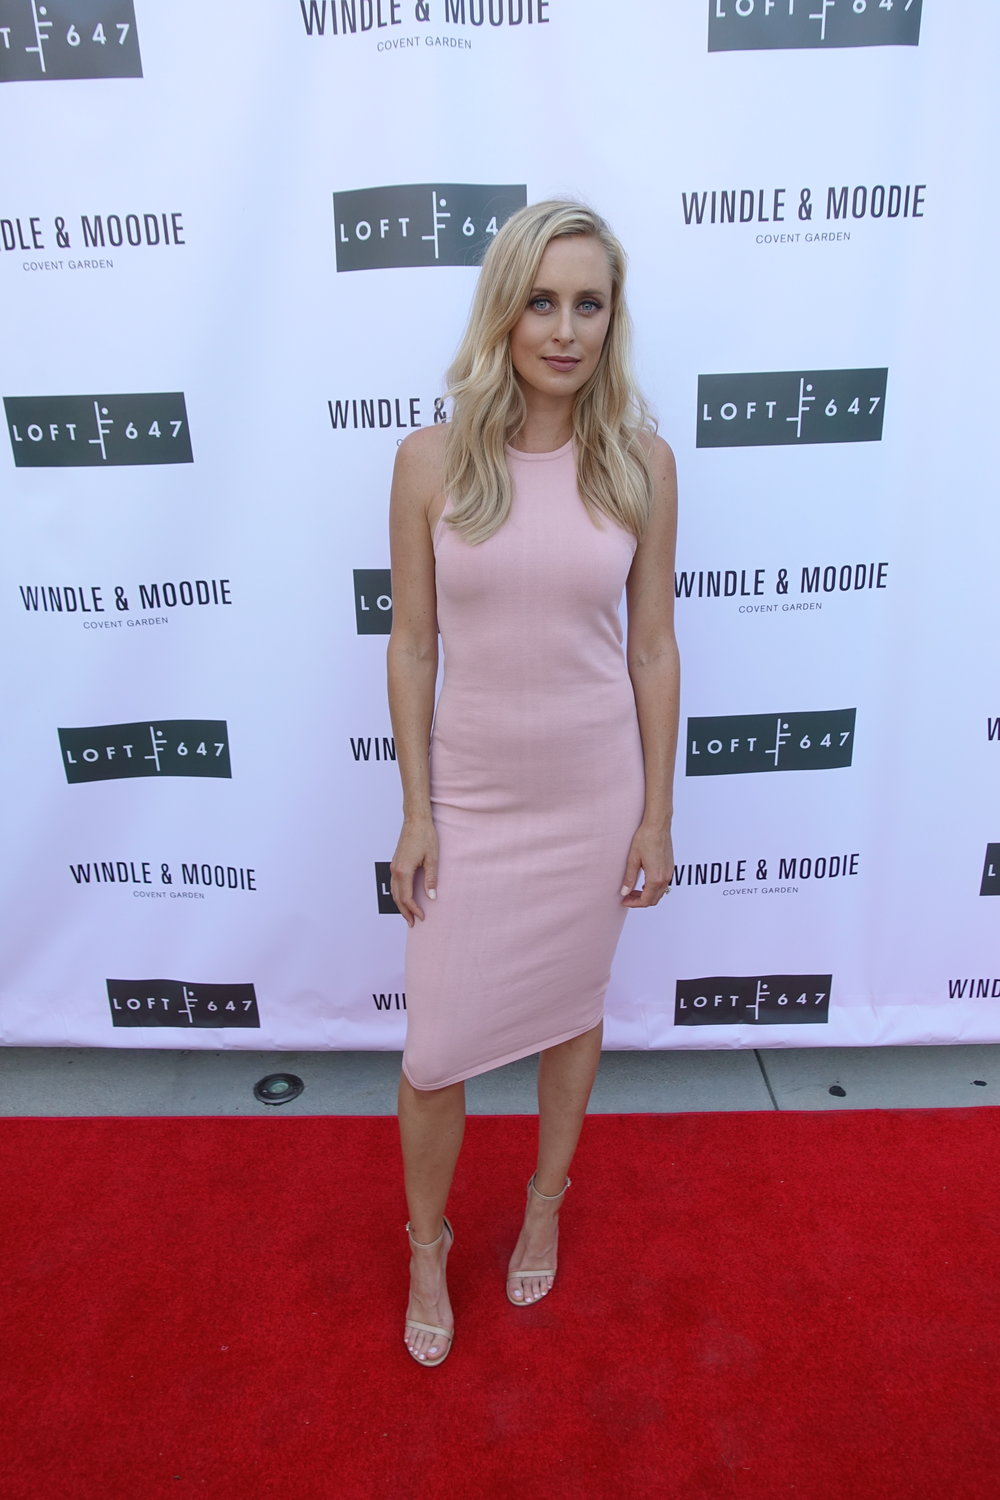 Appearance: Windle & Moodie Official USA Launch, West Hollywood